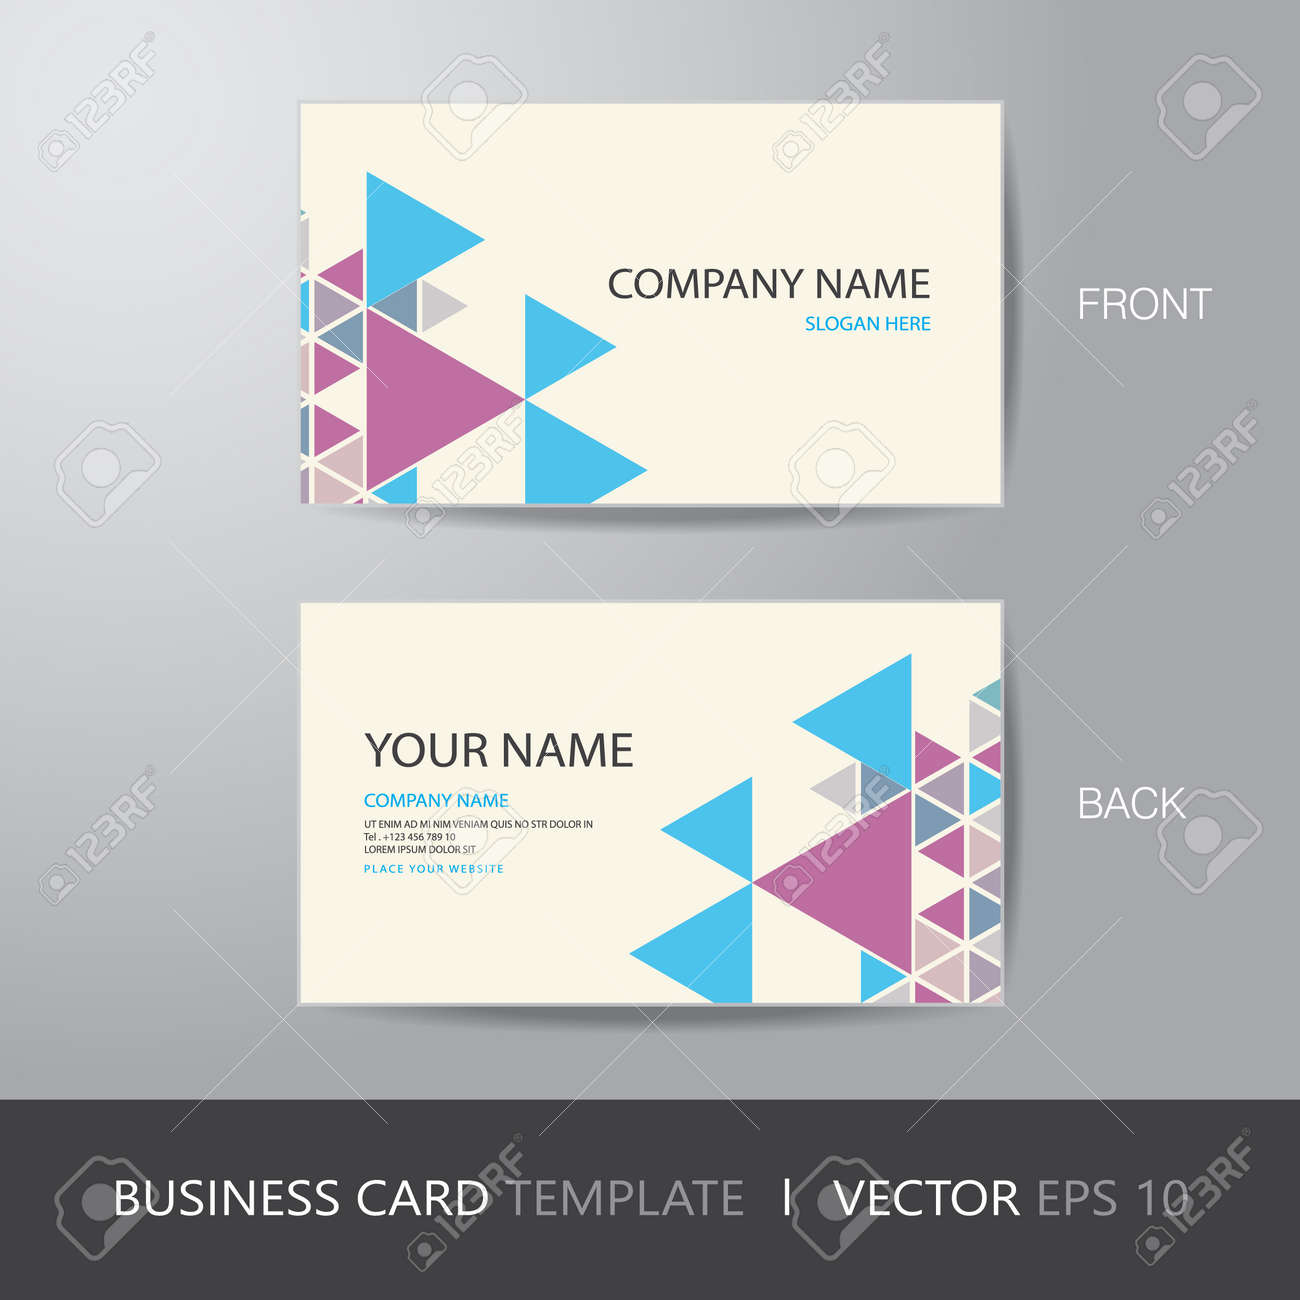 Business card triangle abstract background design layout template business card triangle abstract background design layout template with bleed vector eps10 stock reheart Image collections